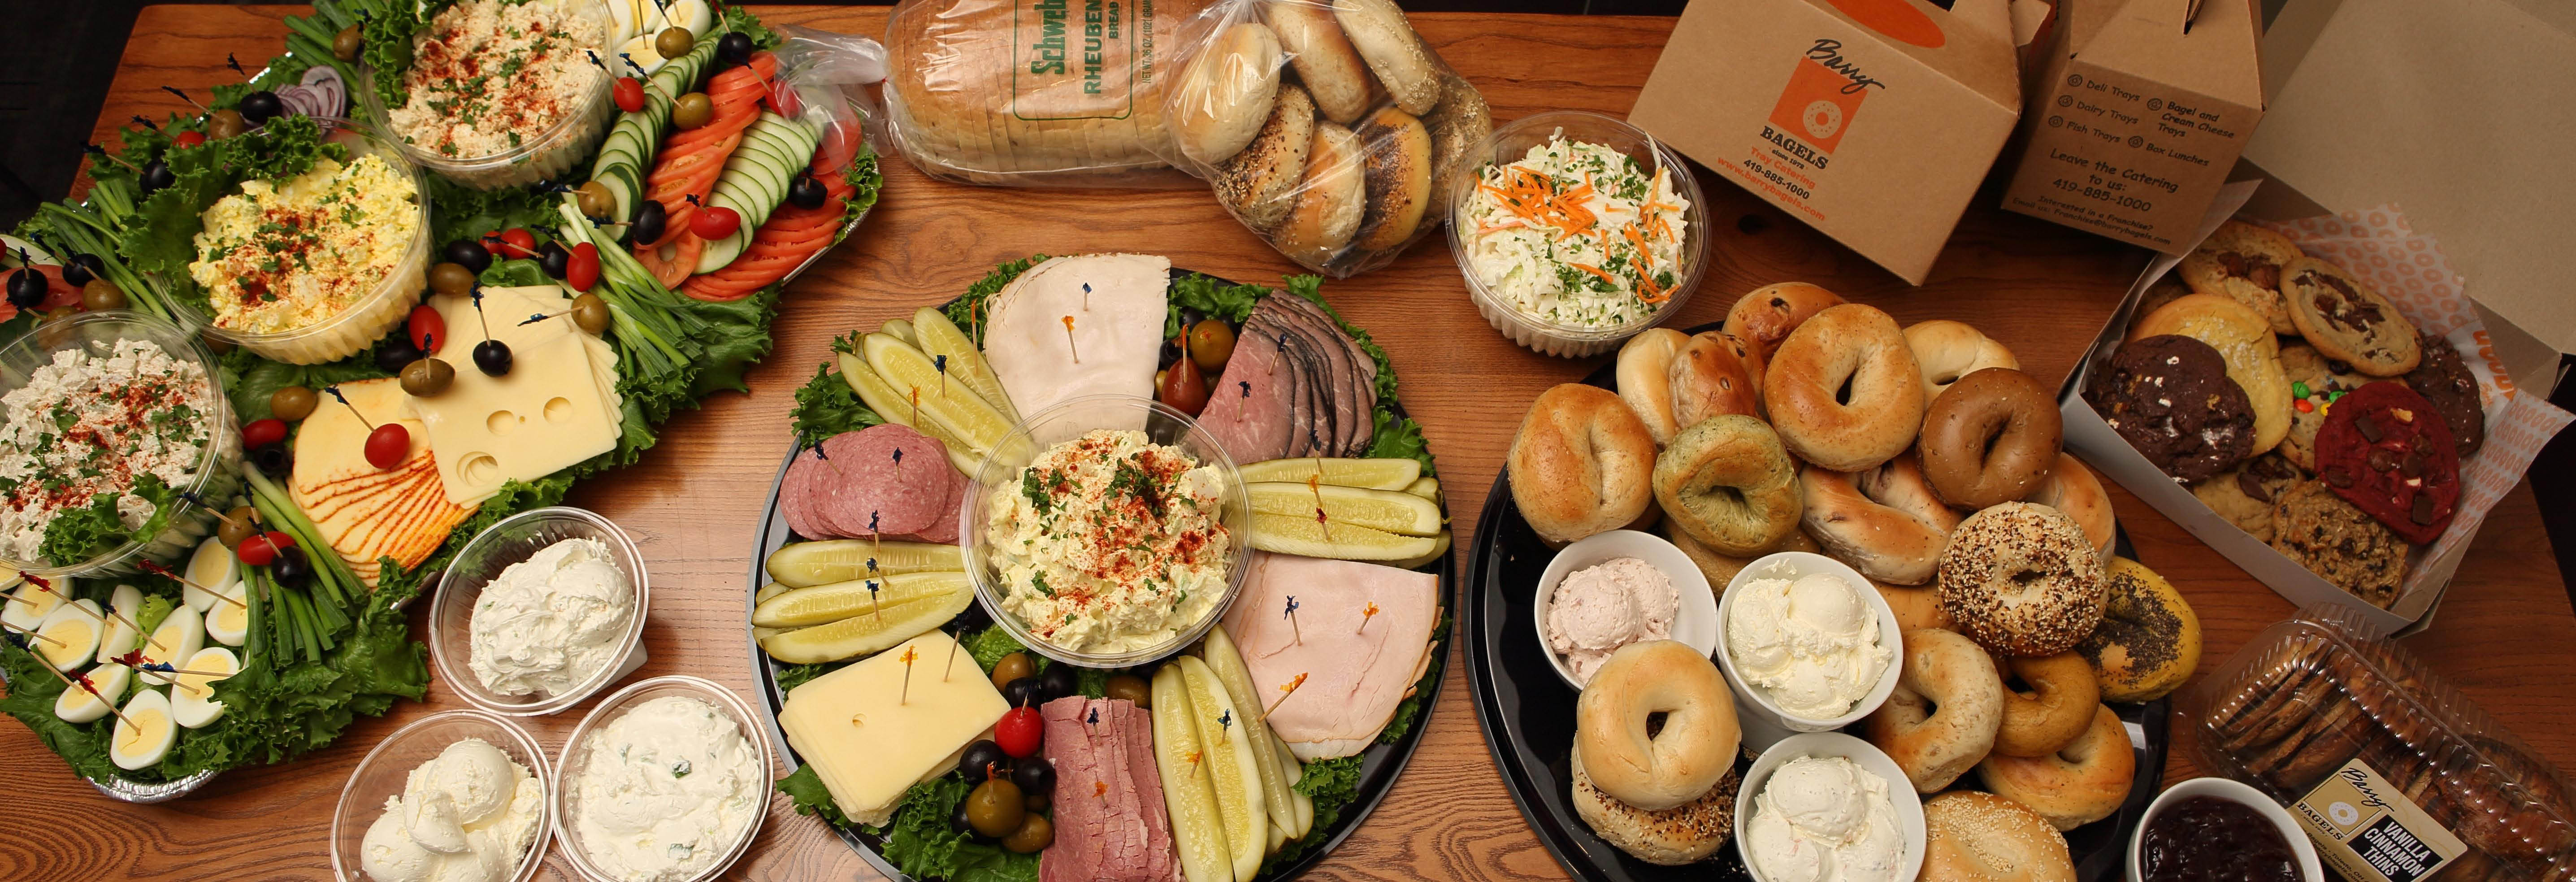 catering bagels sandwiches soup salad eggels desserts fresh coffee